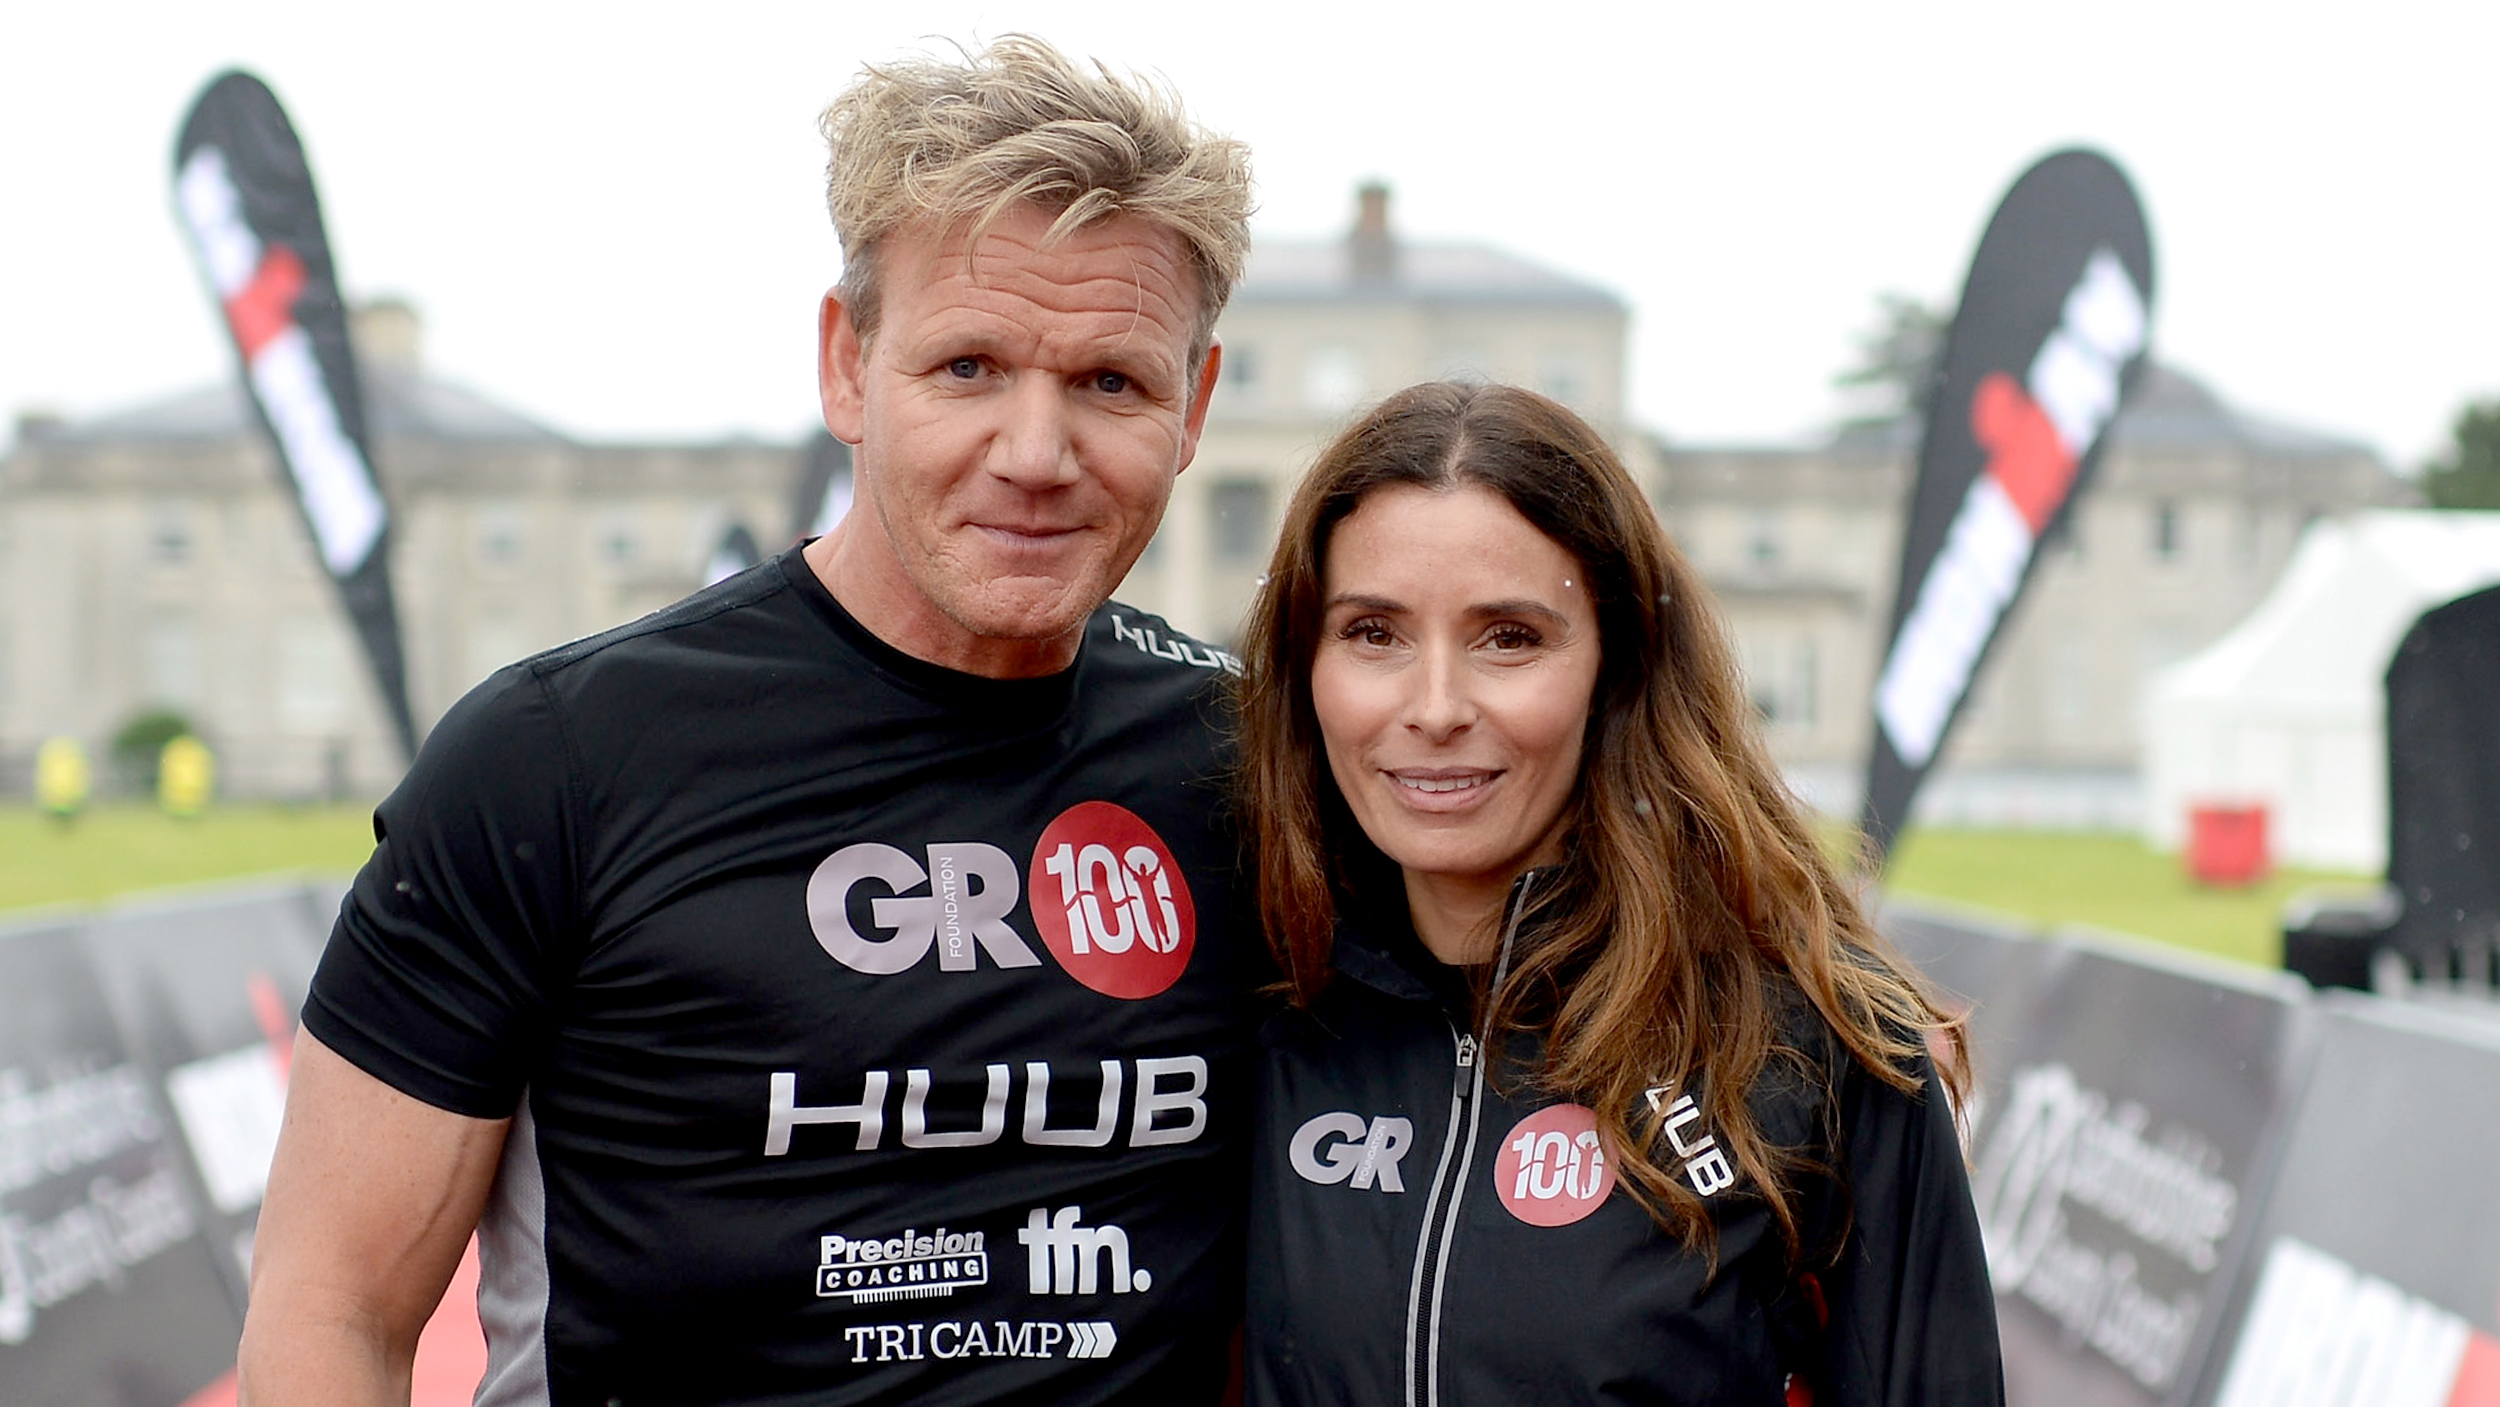 Reputable Wife Tana As A After Gordon Ramsay Wife Wife Tana As A After Gordon Ramsay Gordon Ramsay Kids Gordon Ramsay Wife Age nice food Gordon Ramsay Wife